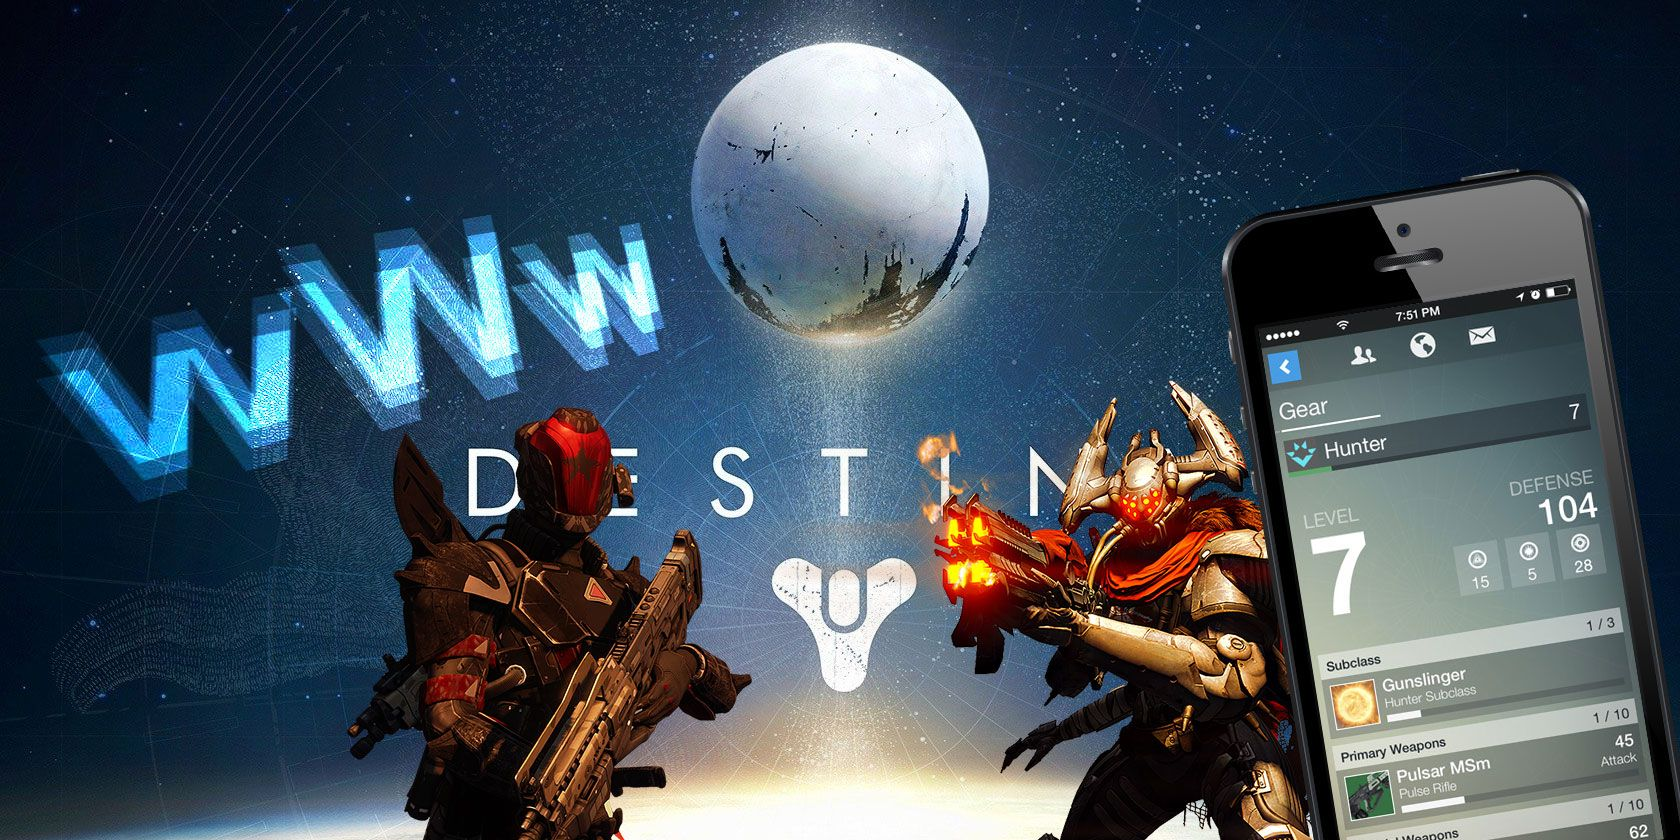 matchmaking site for destiny Destiny currently lacks matchmaking support for raids, but it may not be that way forever world design lead steve cotton told metro developer bungie has been thinking about that a lot, though.